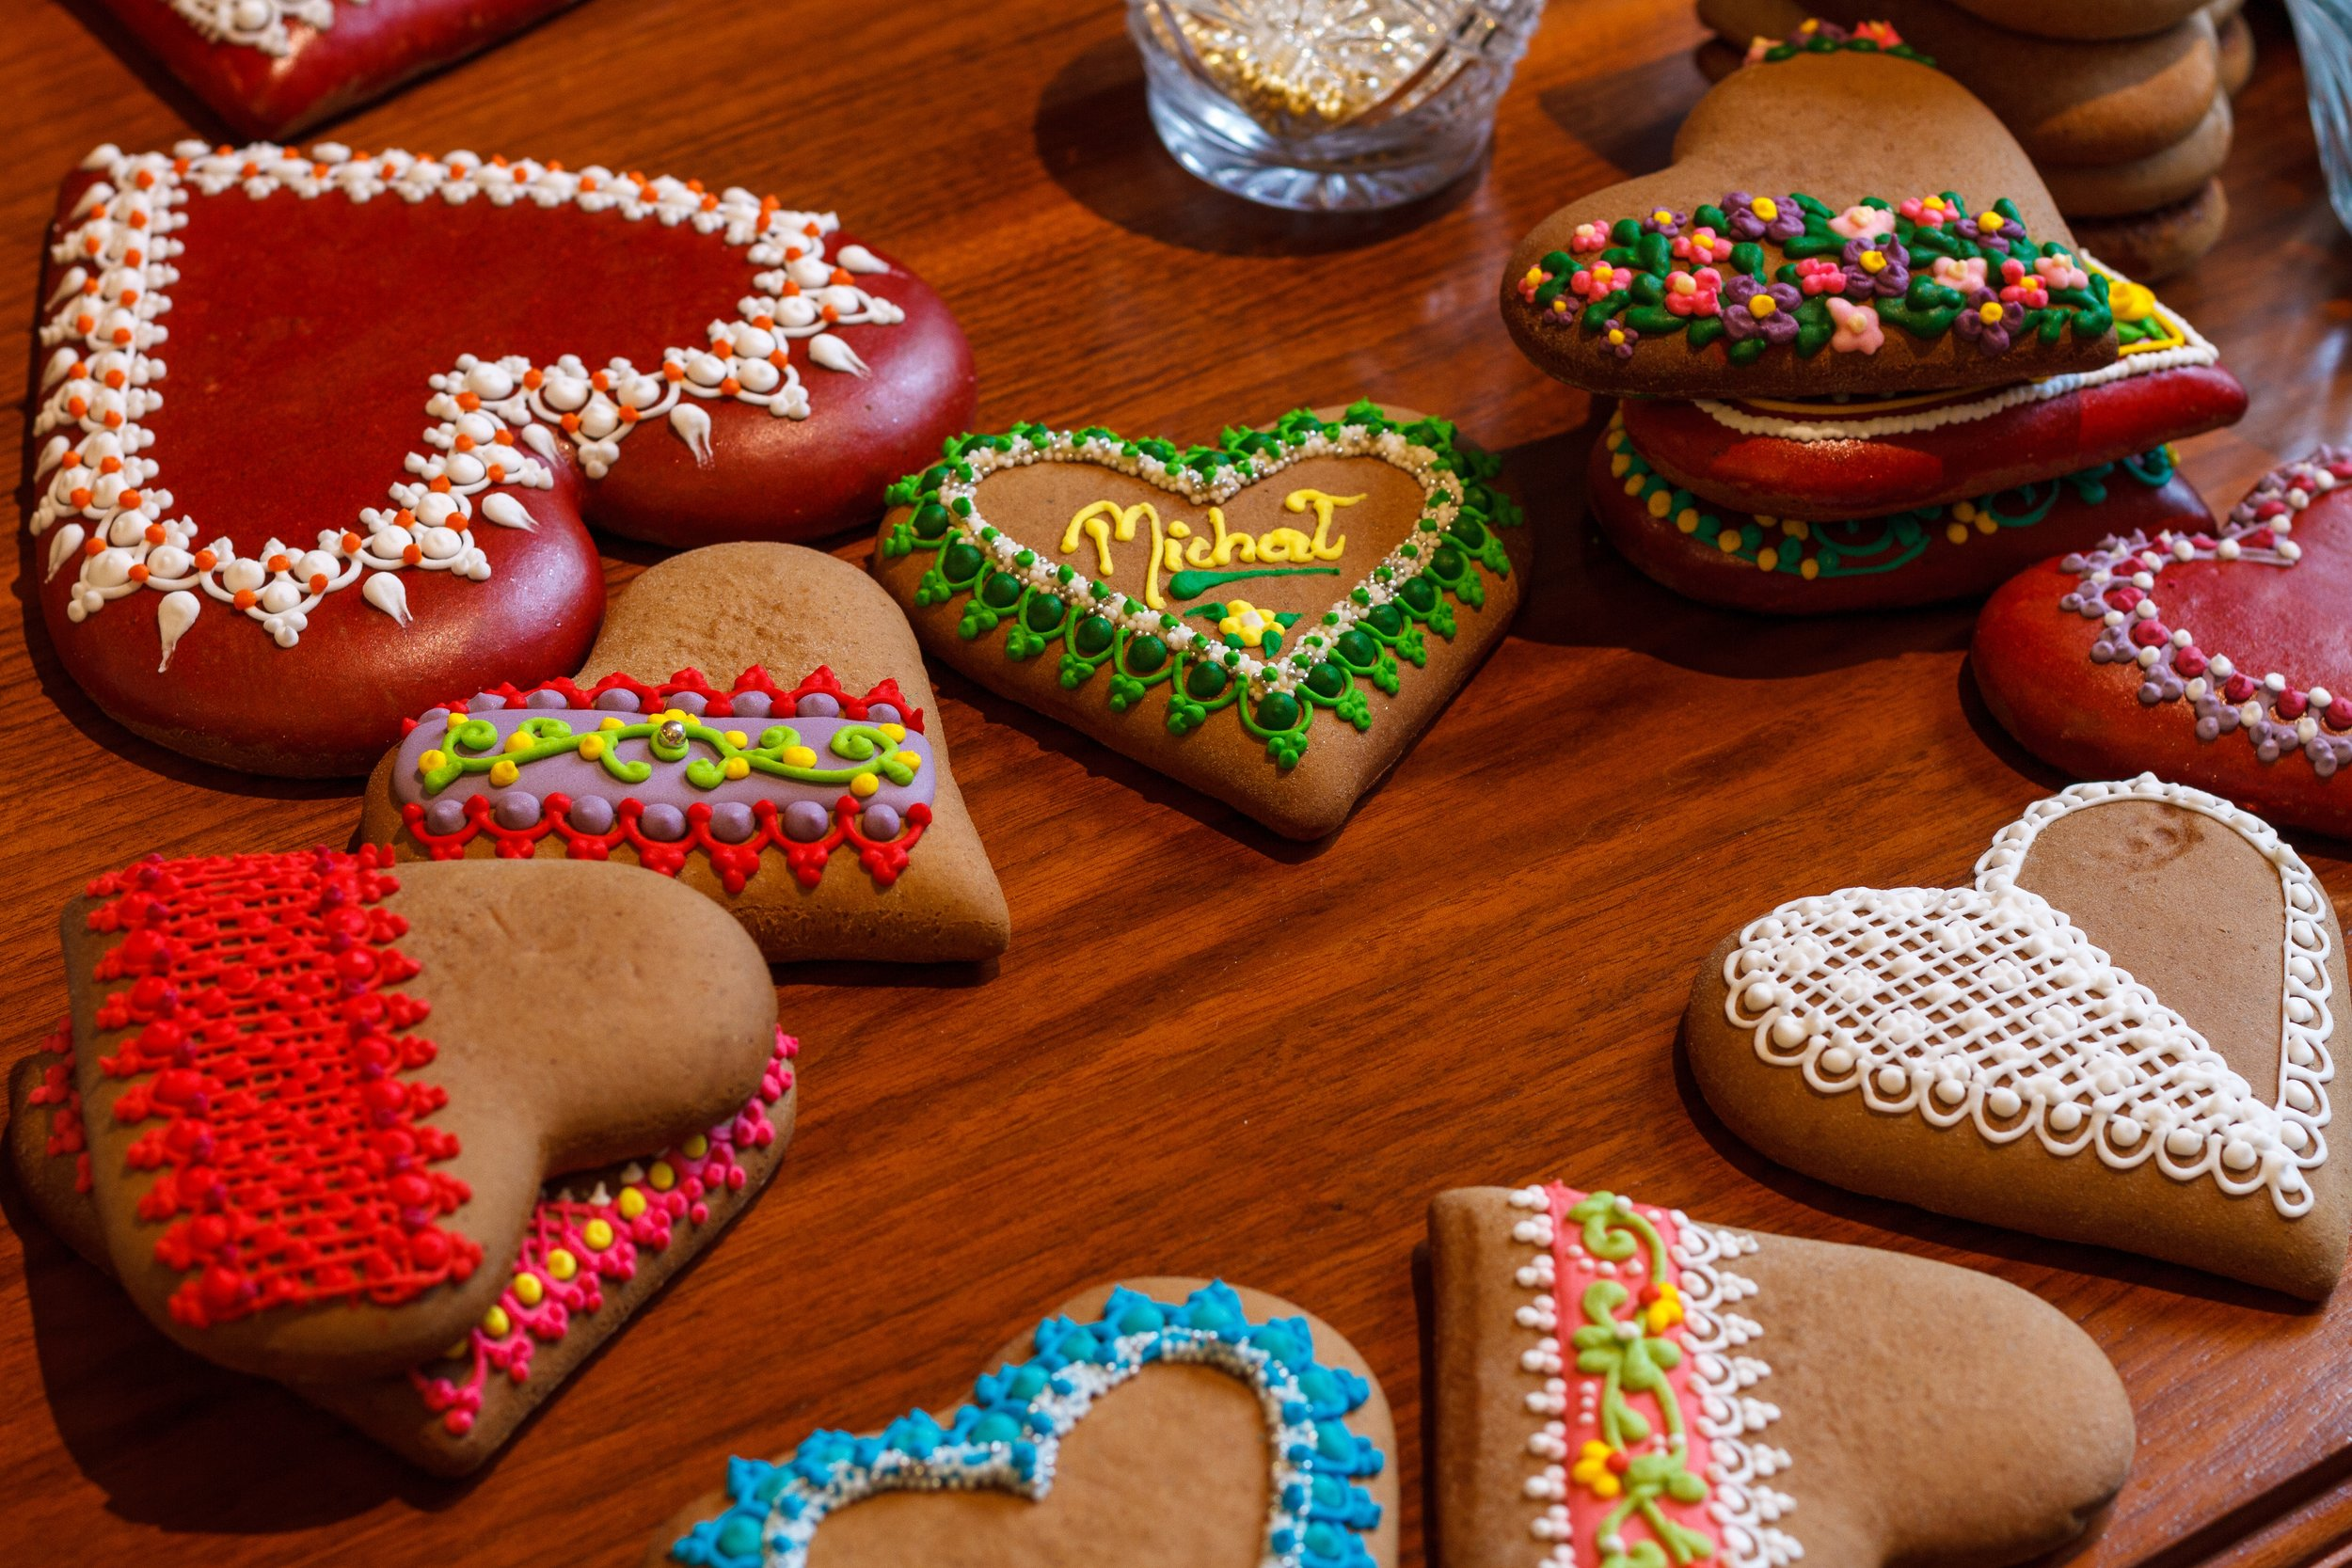 108 w5 art-artistic-biscuits-668156.jpg